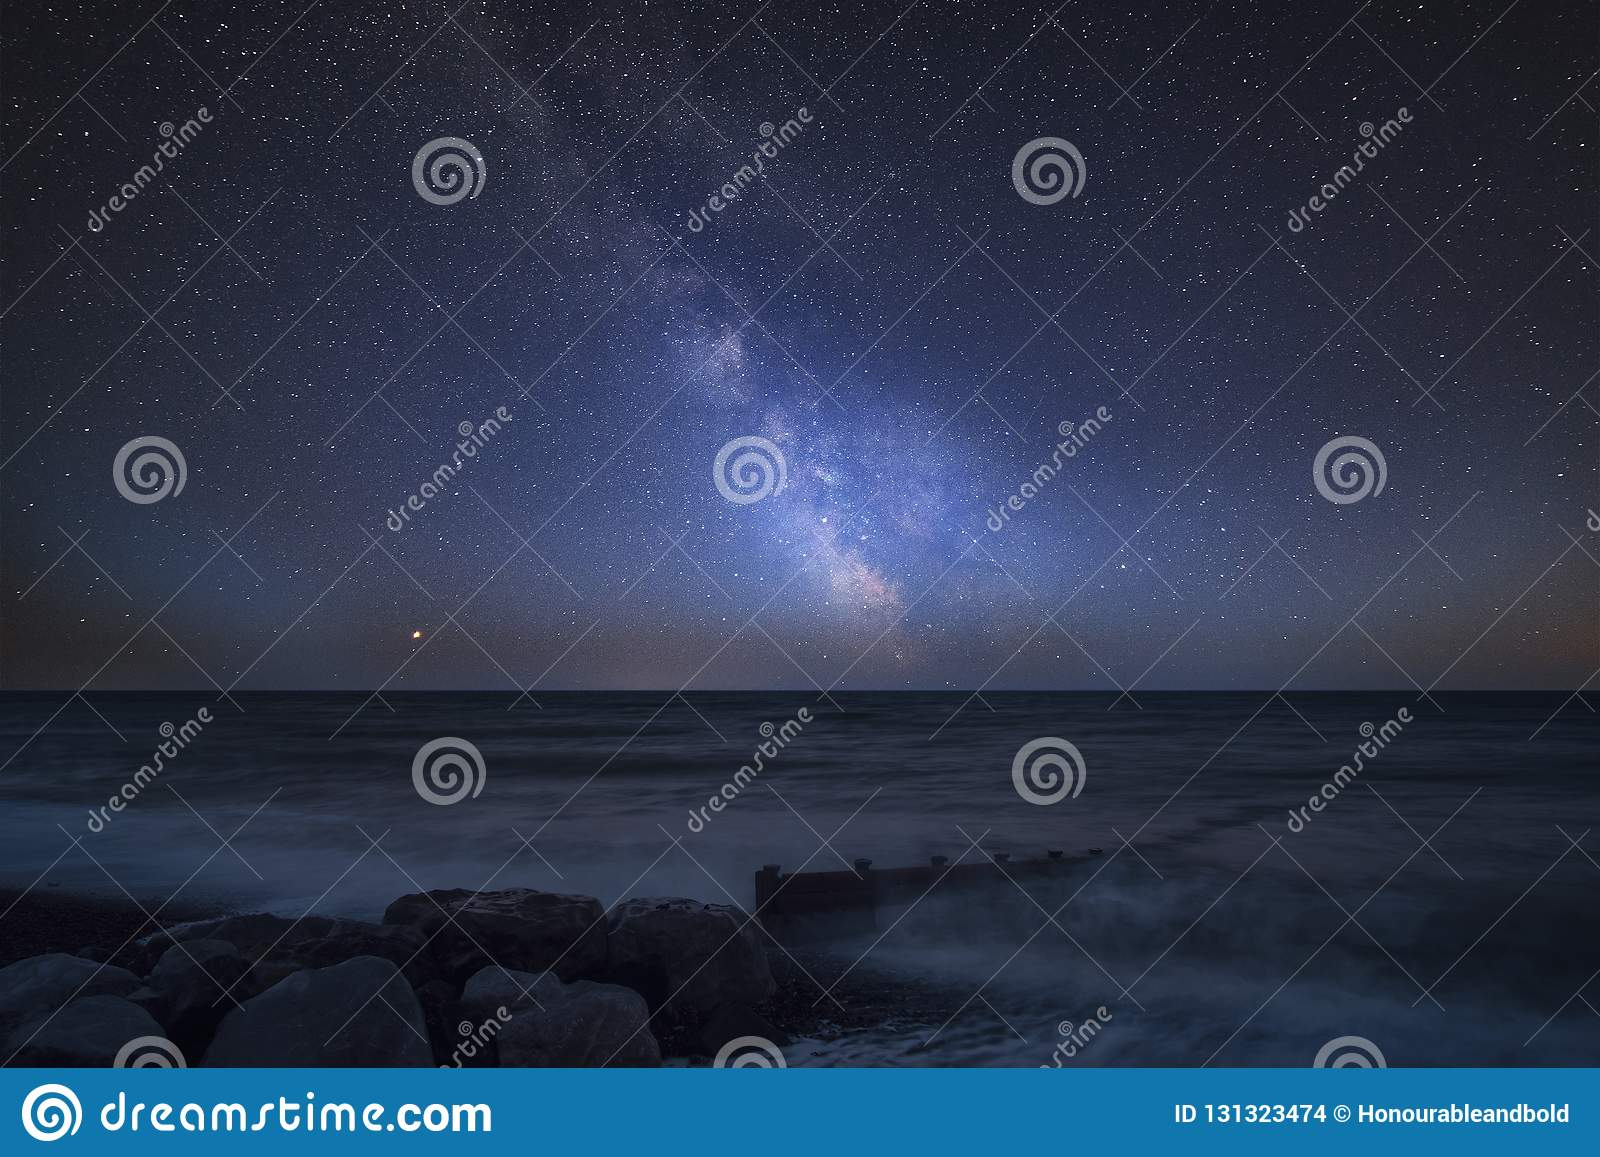 Vibrant Milky Way composite image over landscape of pier at sea